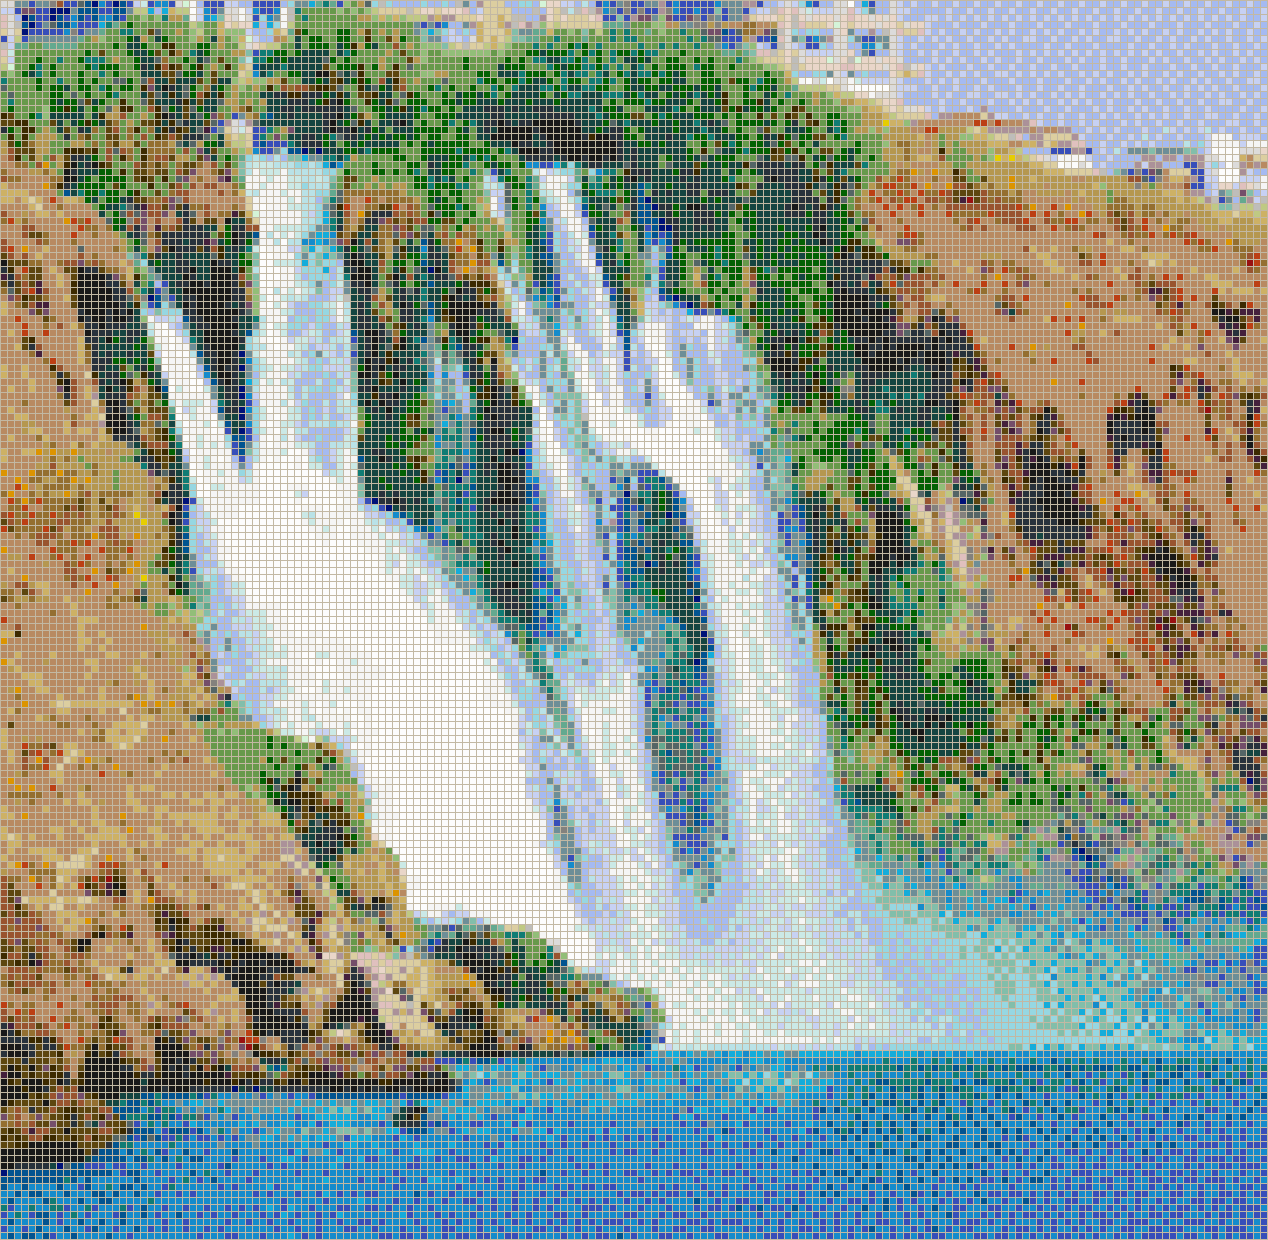 Duden Waterfall (Antalya, Turkey) - Mosaic Tile Picture Art